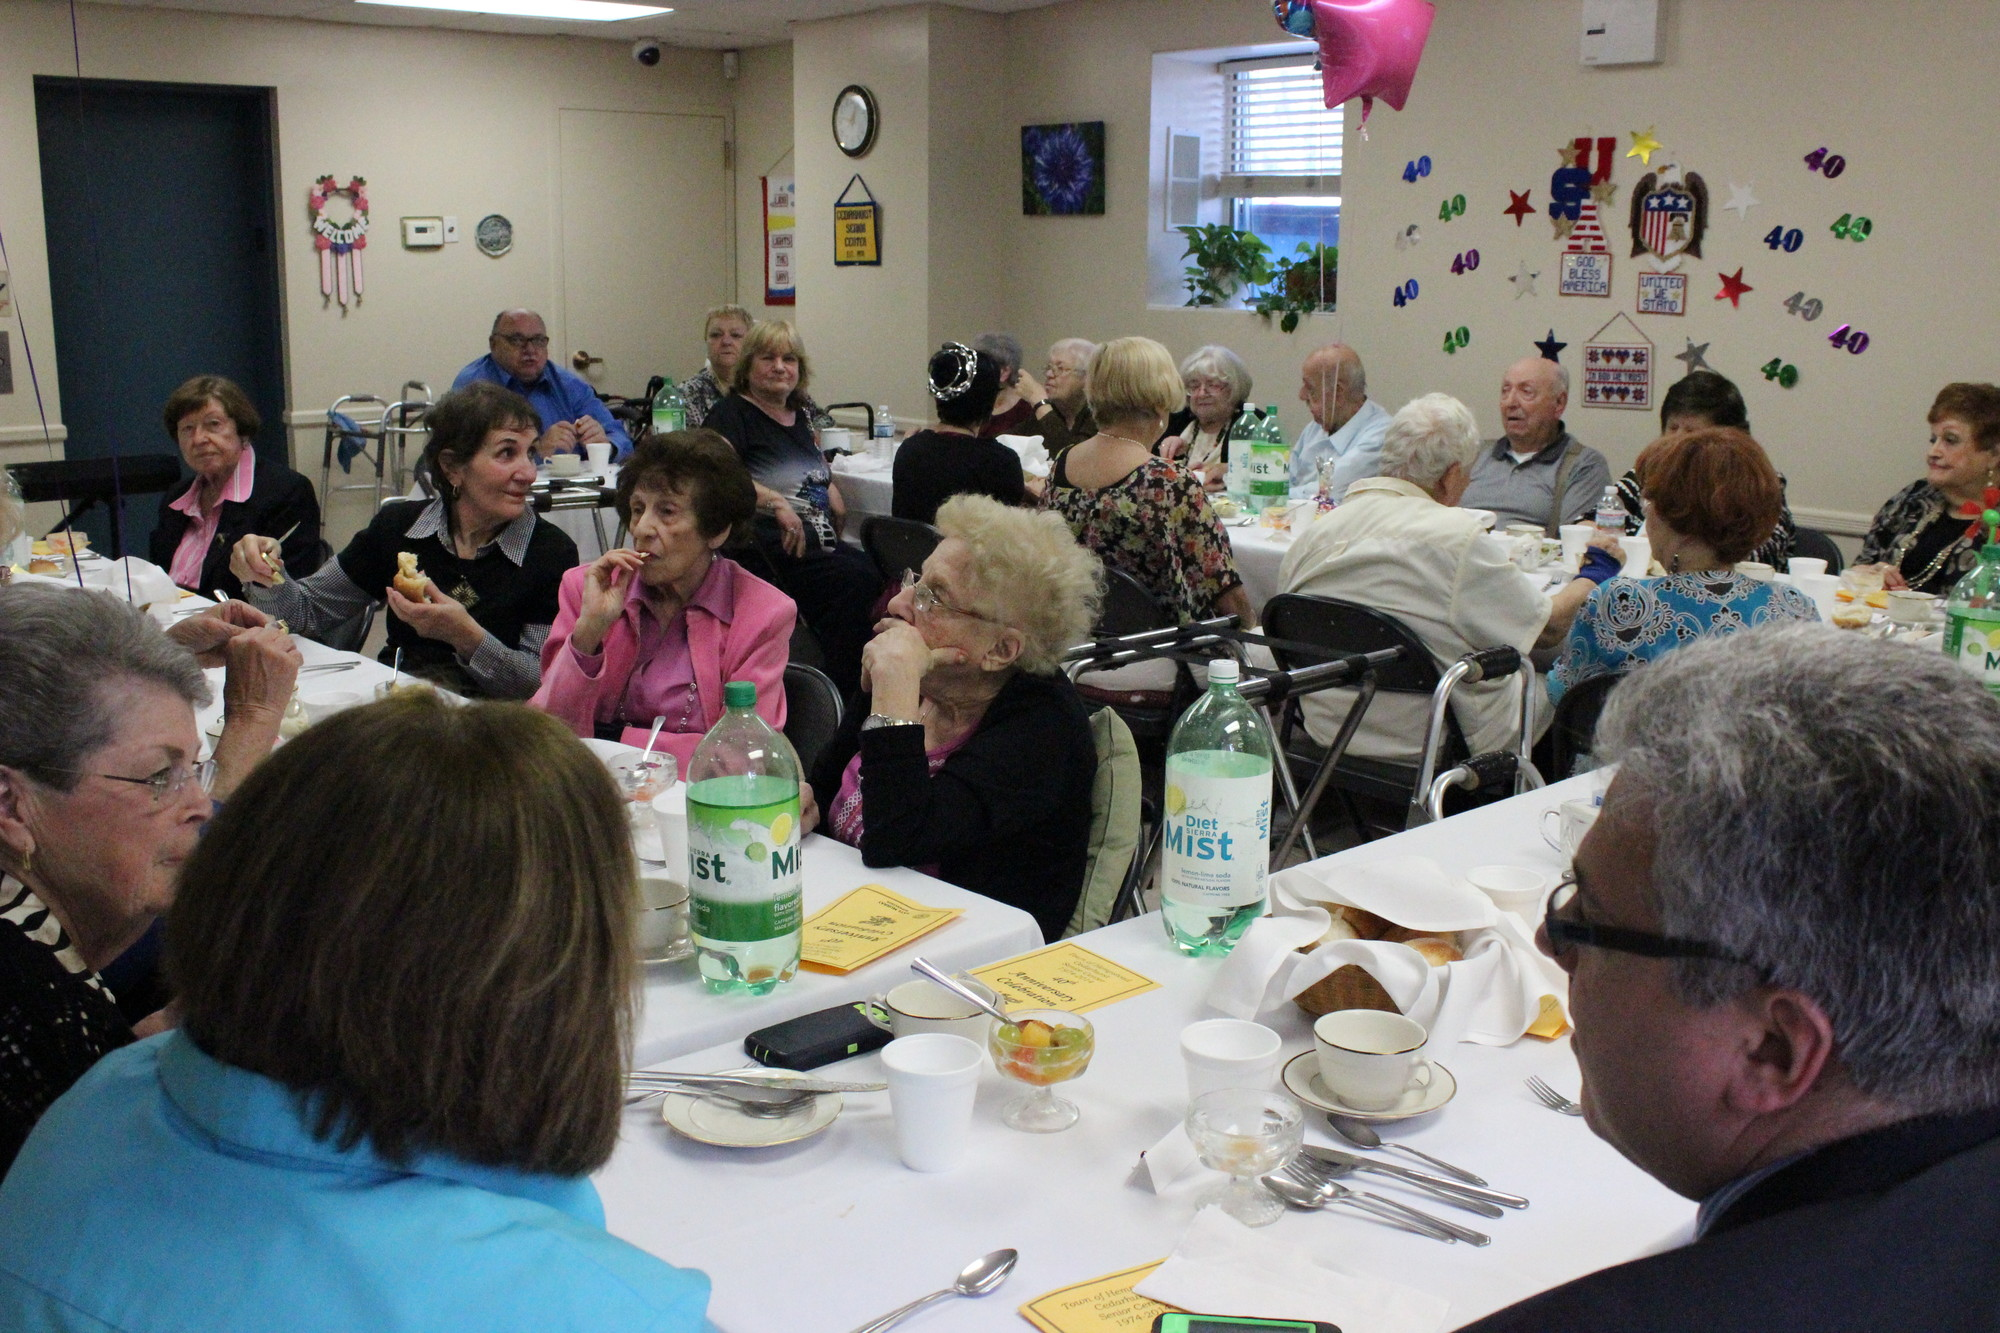 The Cedarhurst Senior Center in Village Hall is a home away from home, where members form friendships and take part in a variety of activities.